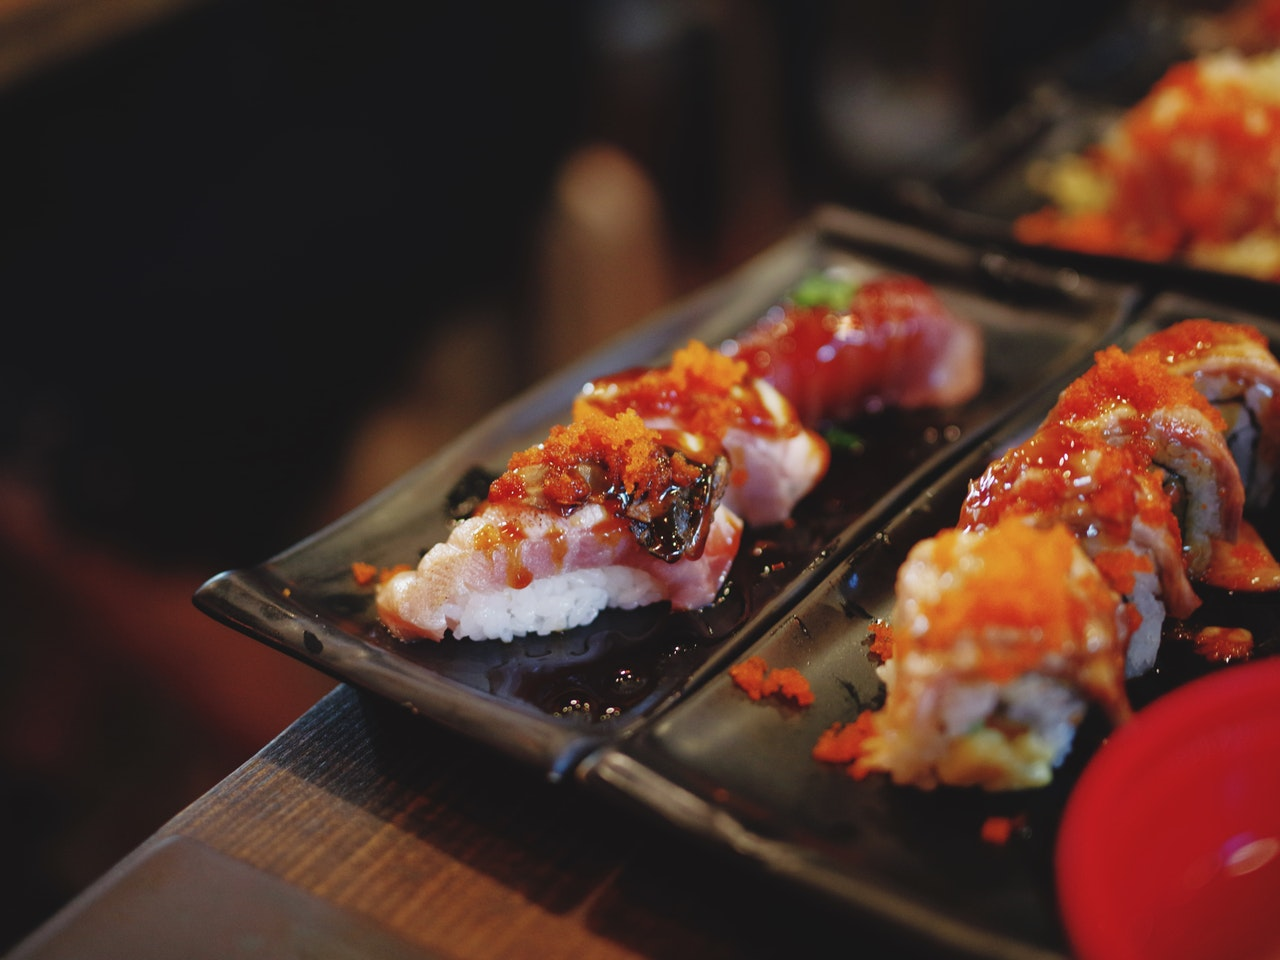 The Best Sushi Restaurants in King County